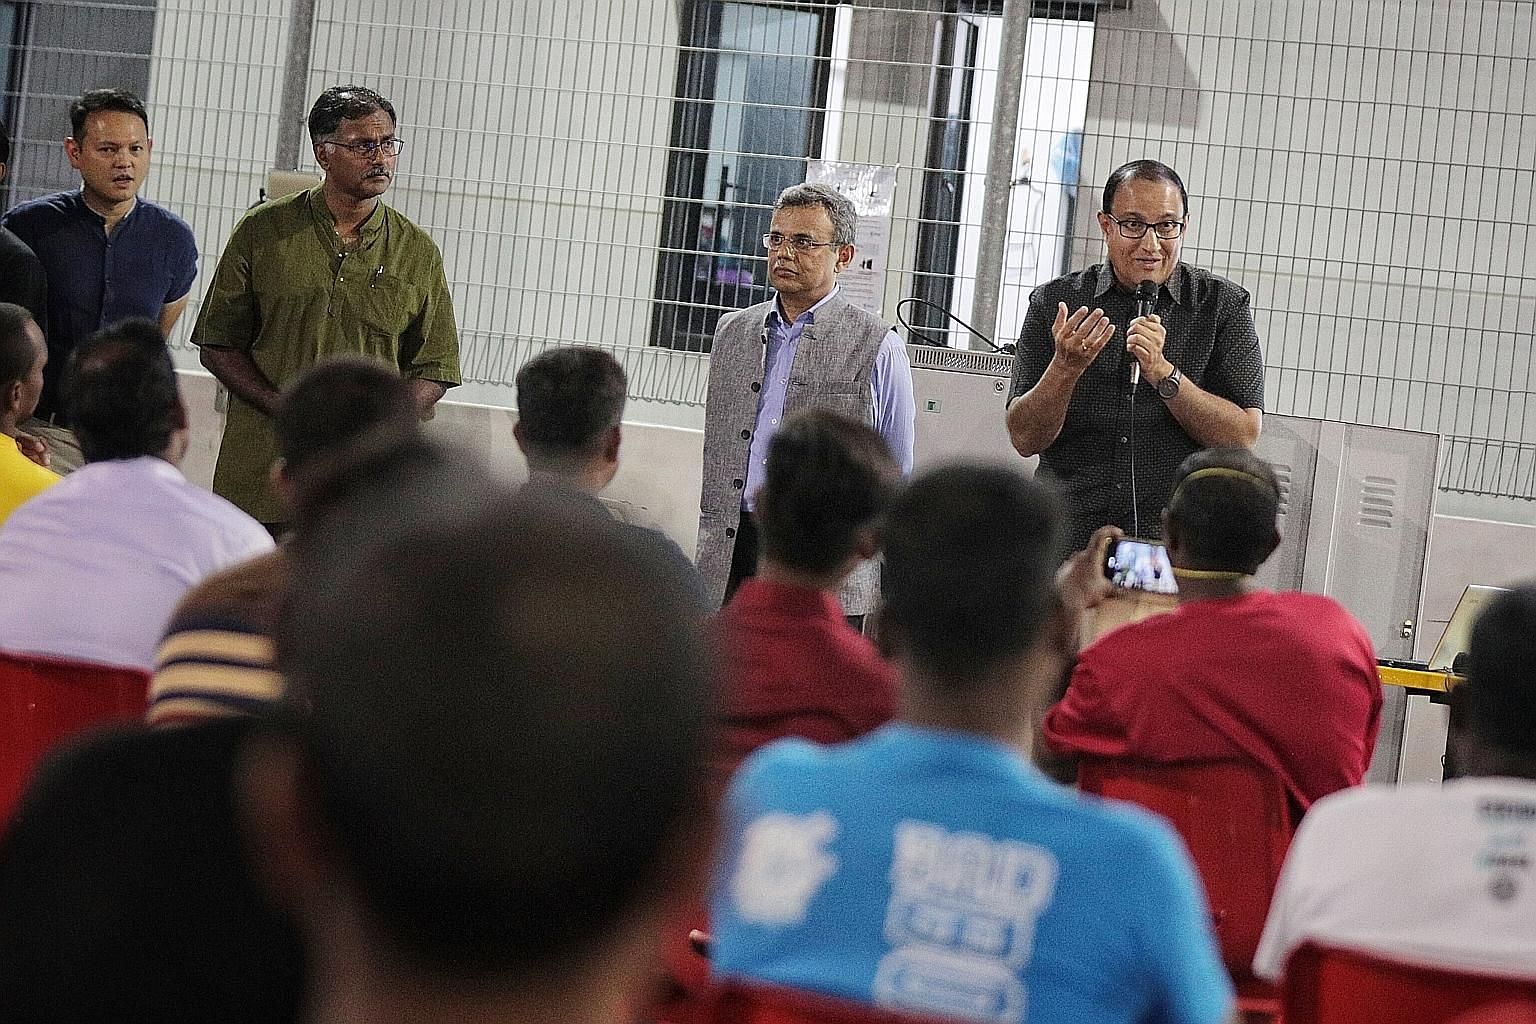 Minister for Communications and Information S. Iswaran (far right) speaking to migrant workers to assuage their concerns at Westlite Papan dormitory in Jurong yesterday. With him are (from left) Minister of State for Manpower Zaqy Mohamad, Bukit Bato